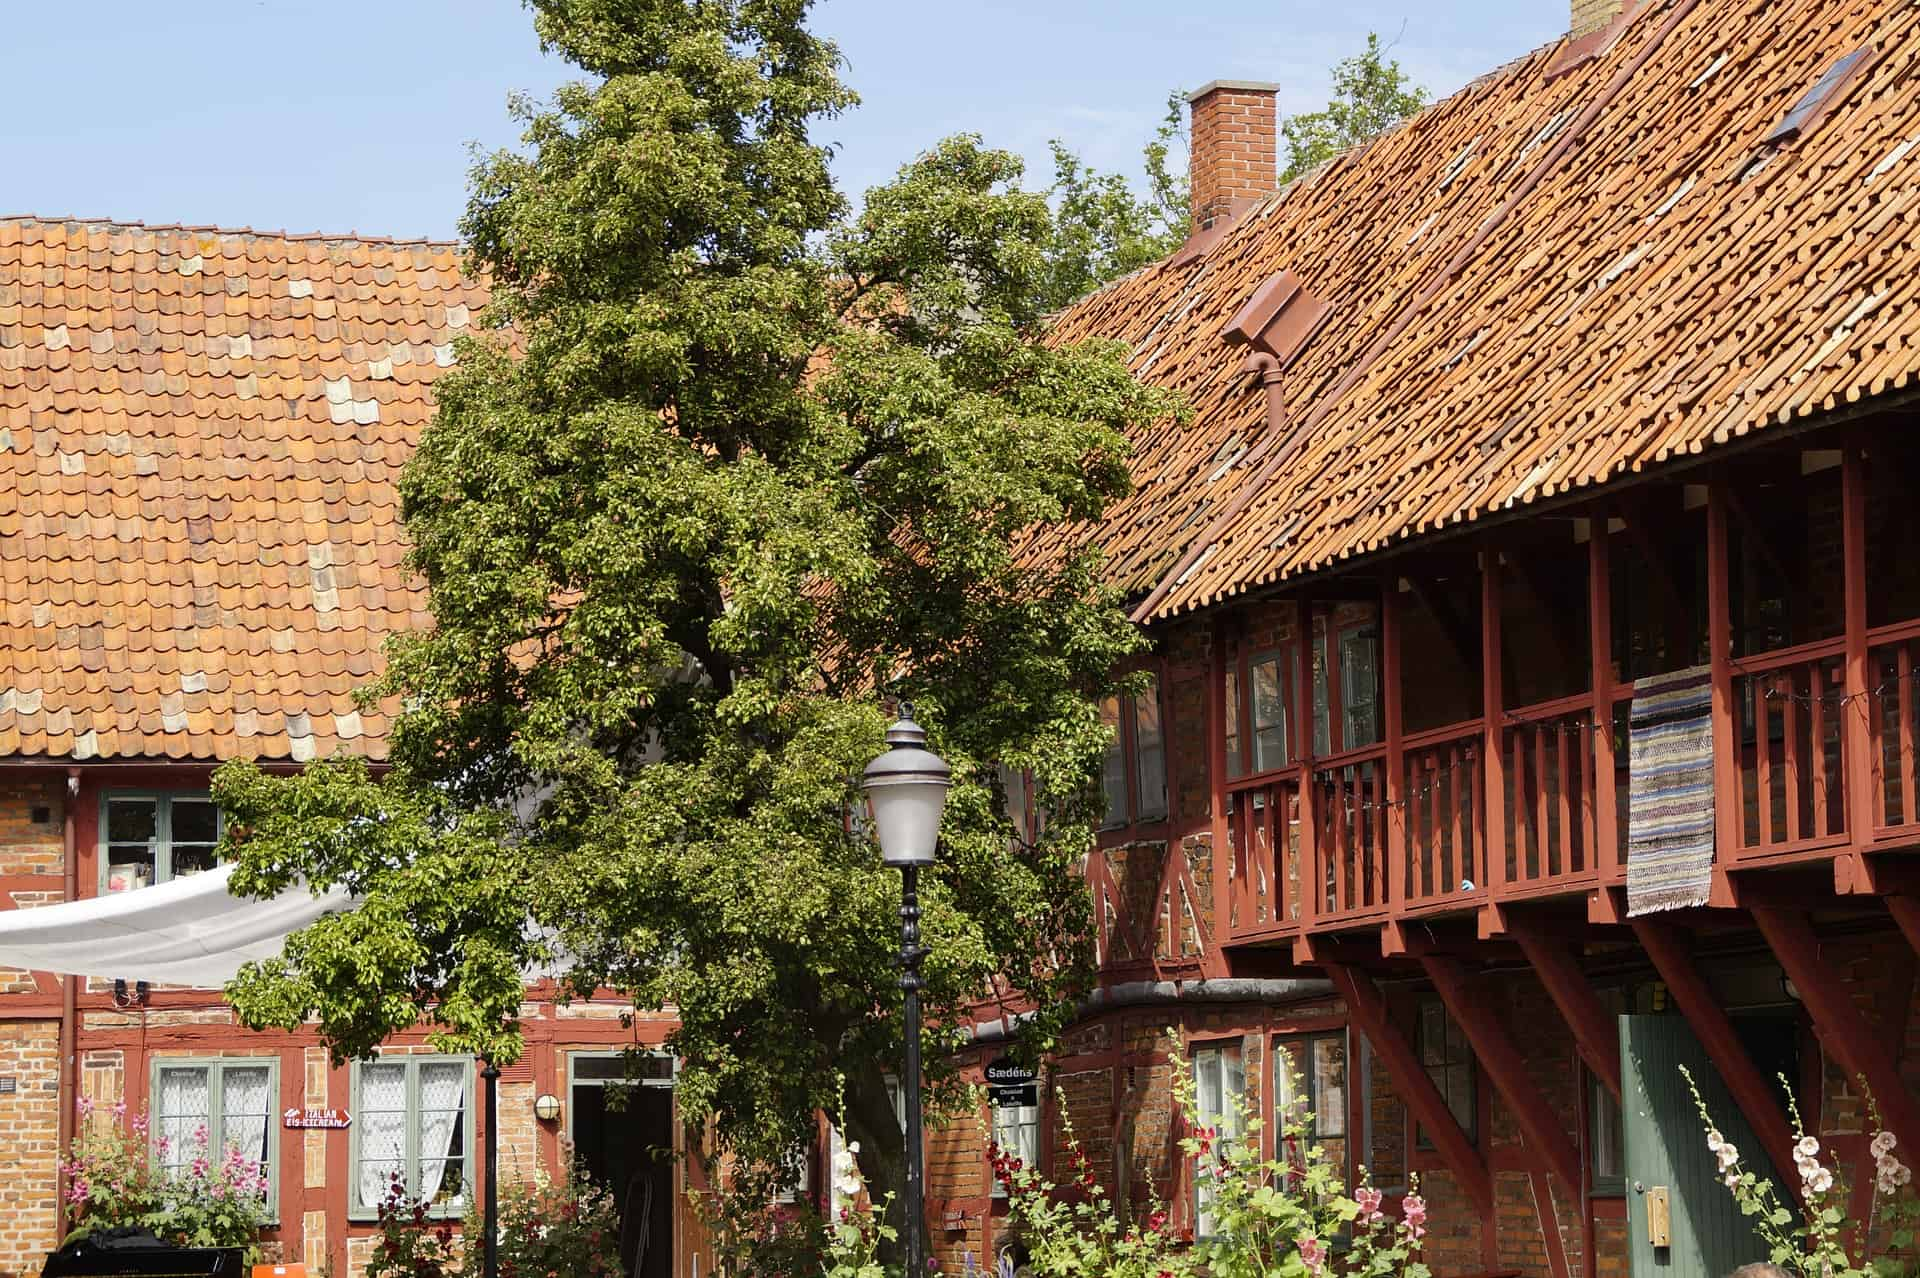 Ystad has a well-maintained center that dates back to the Middle Ages.